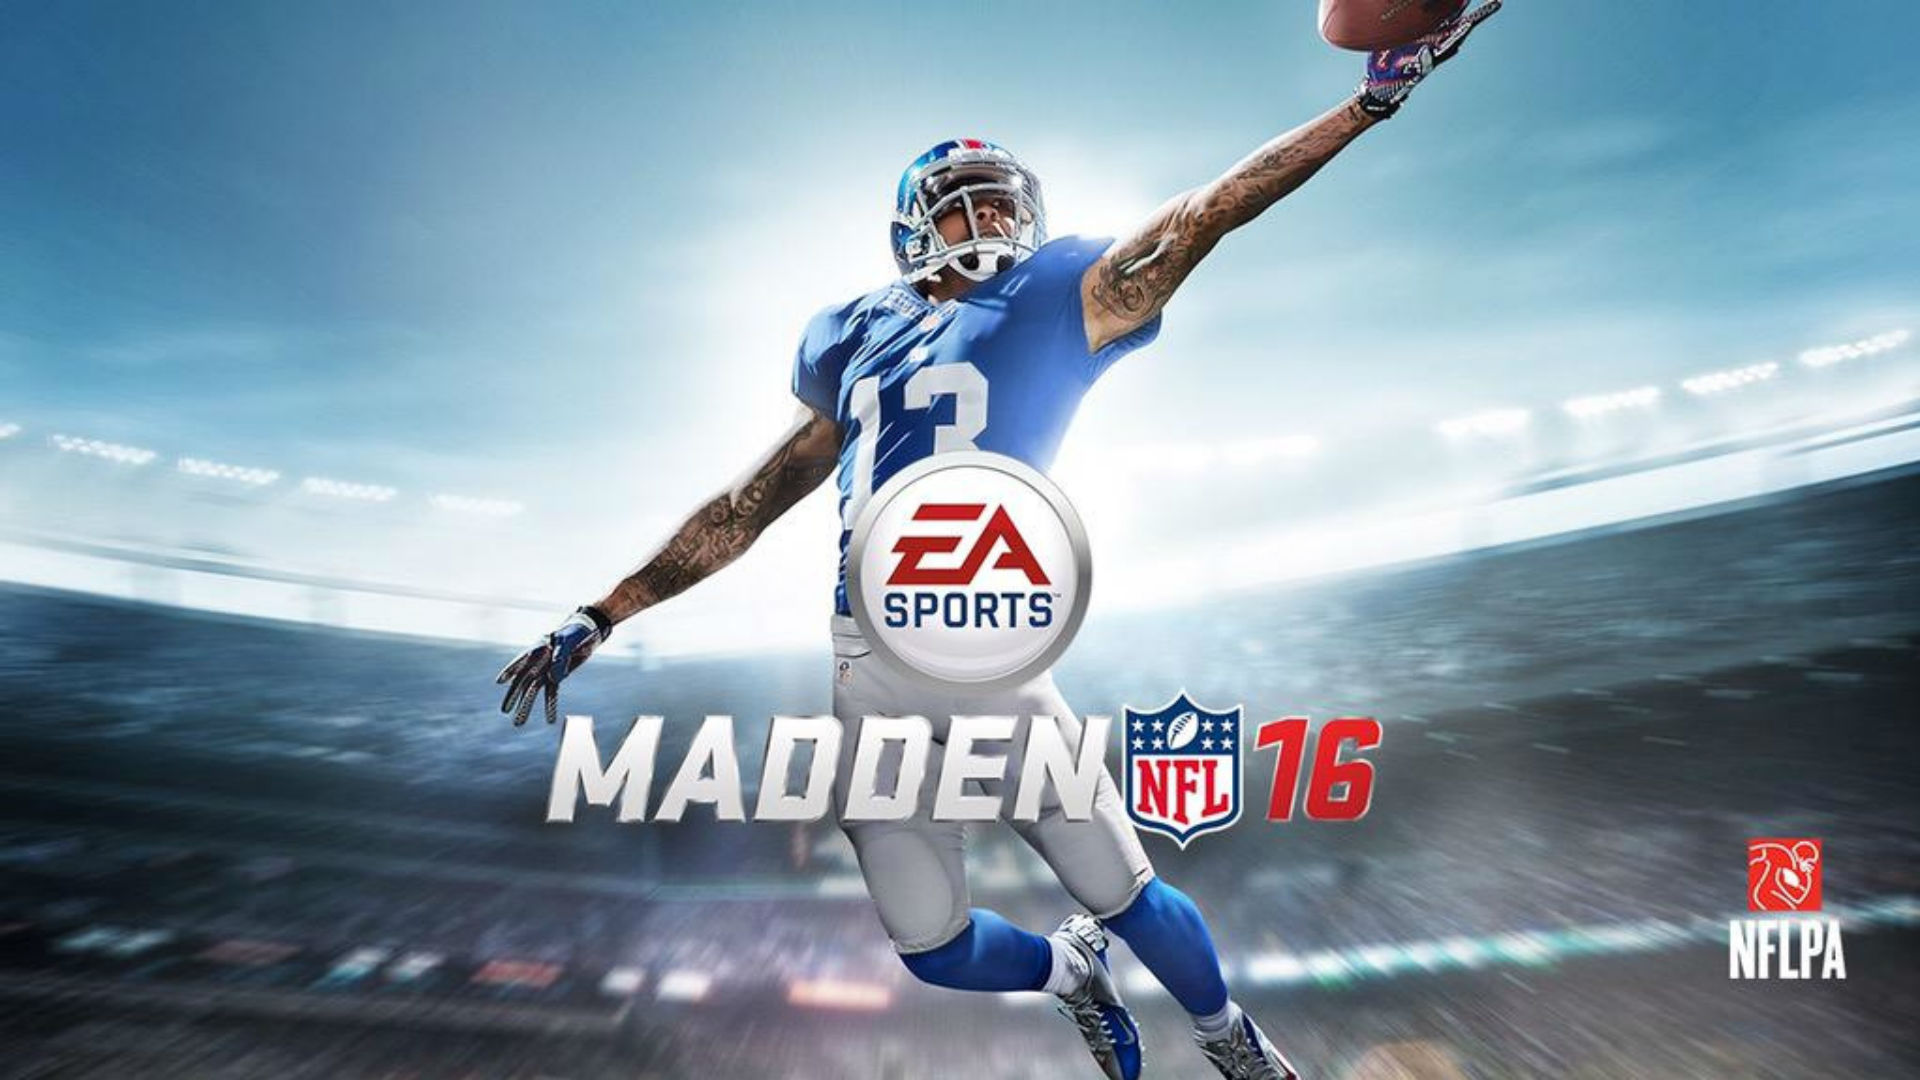 Full soundtrack for 'Madden NFL' 16 revealed